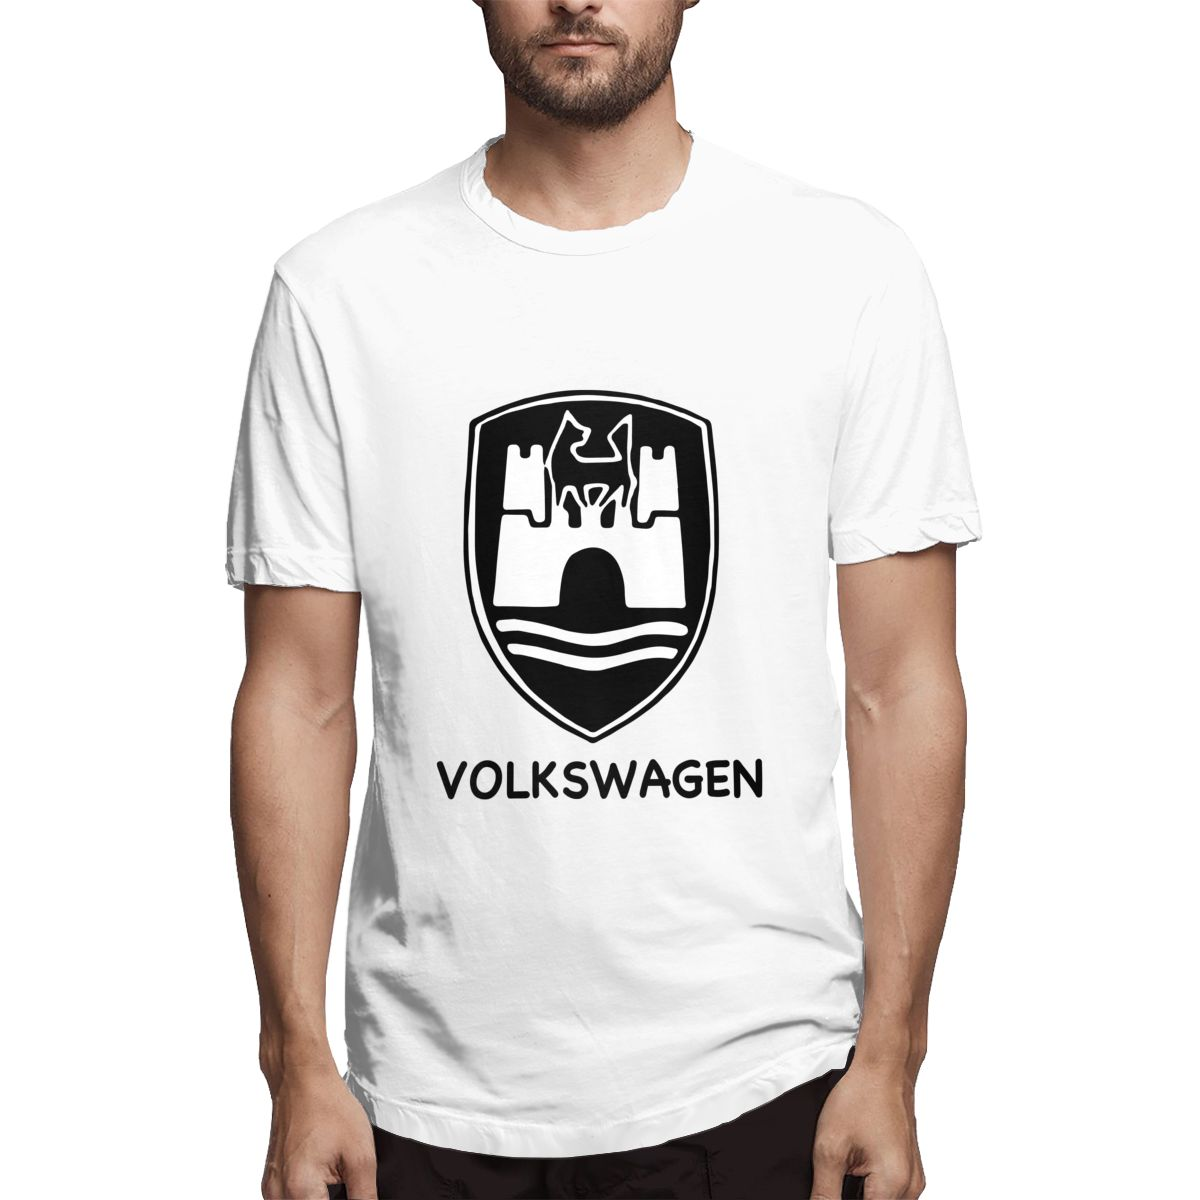 2020 Hot-sale Volkswagen T Shirt Men Male Tshirt Short Sleeve Funny T Shirts Tops Tees